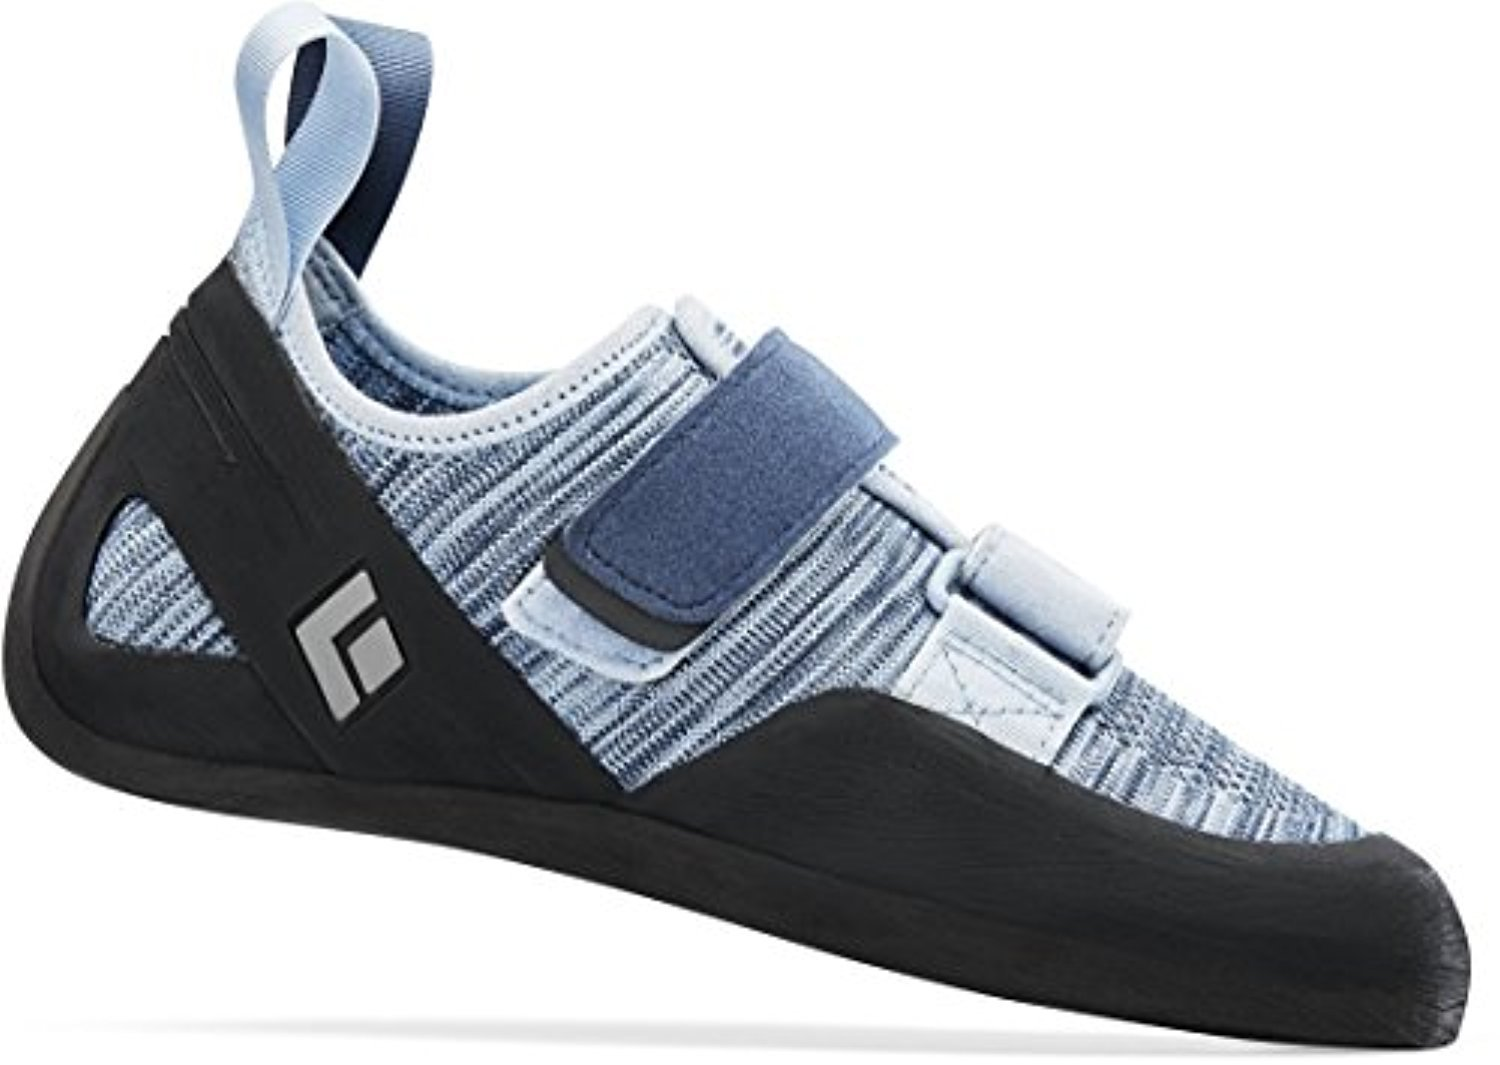 Black Diamond Momentum- Women's Climbing Shoes Blue Steel 9 & Towel Bundle